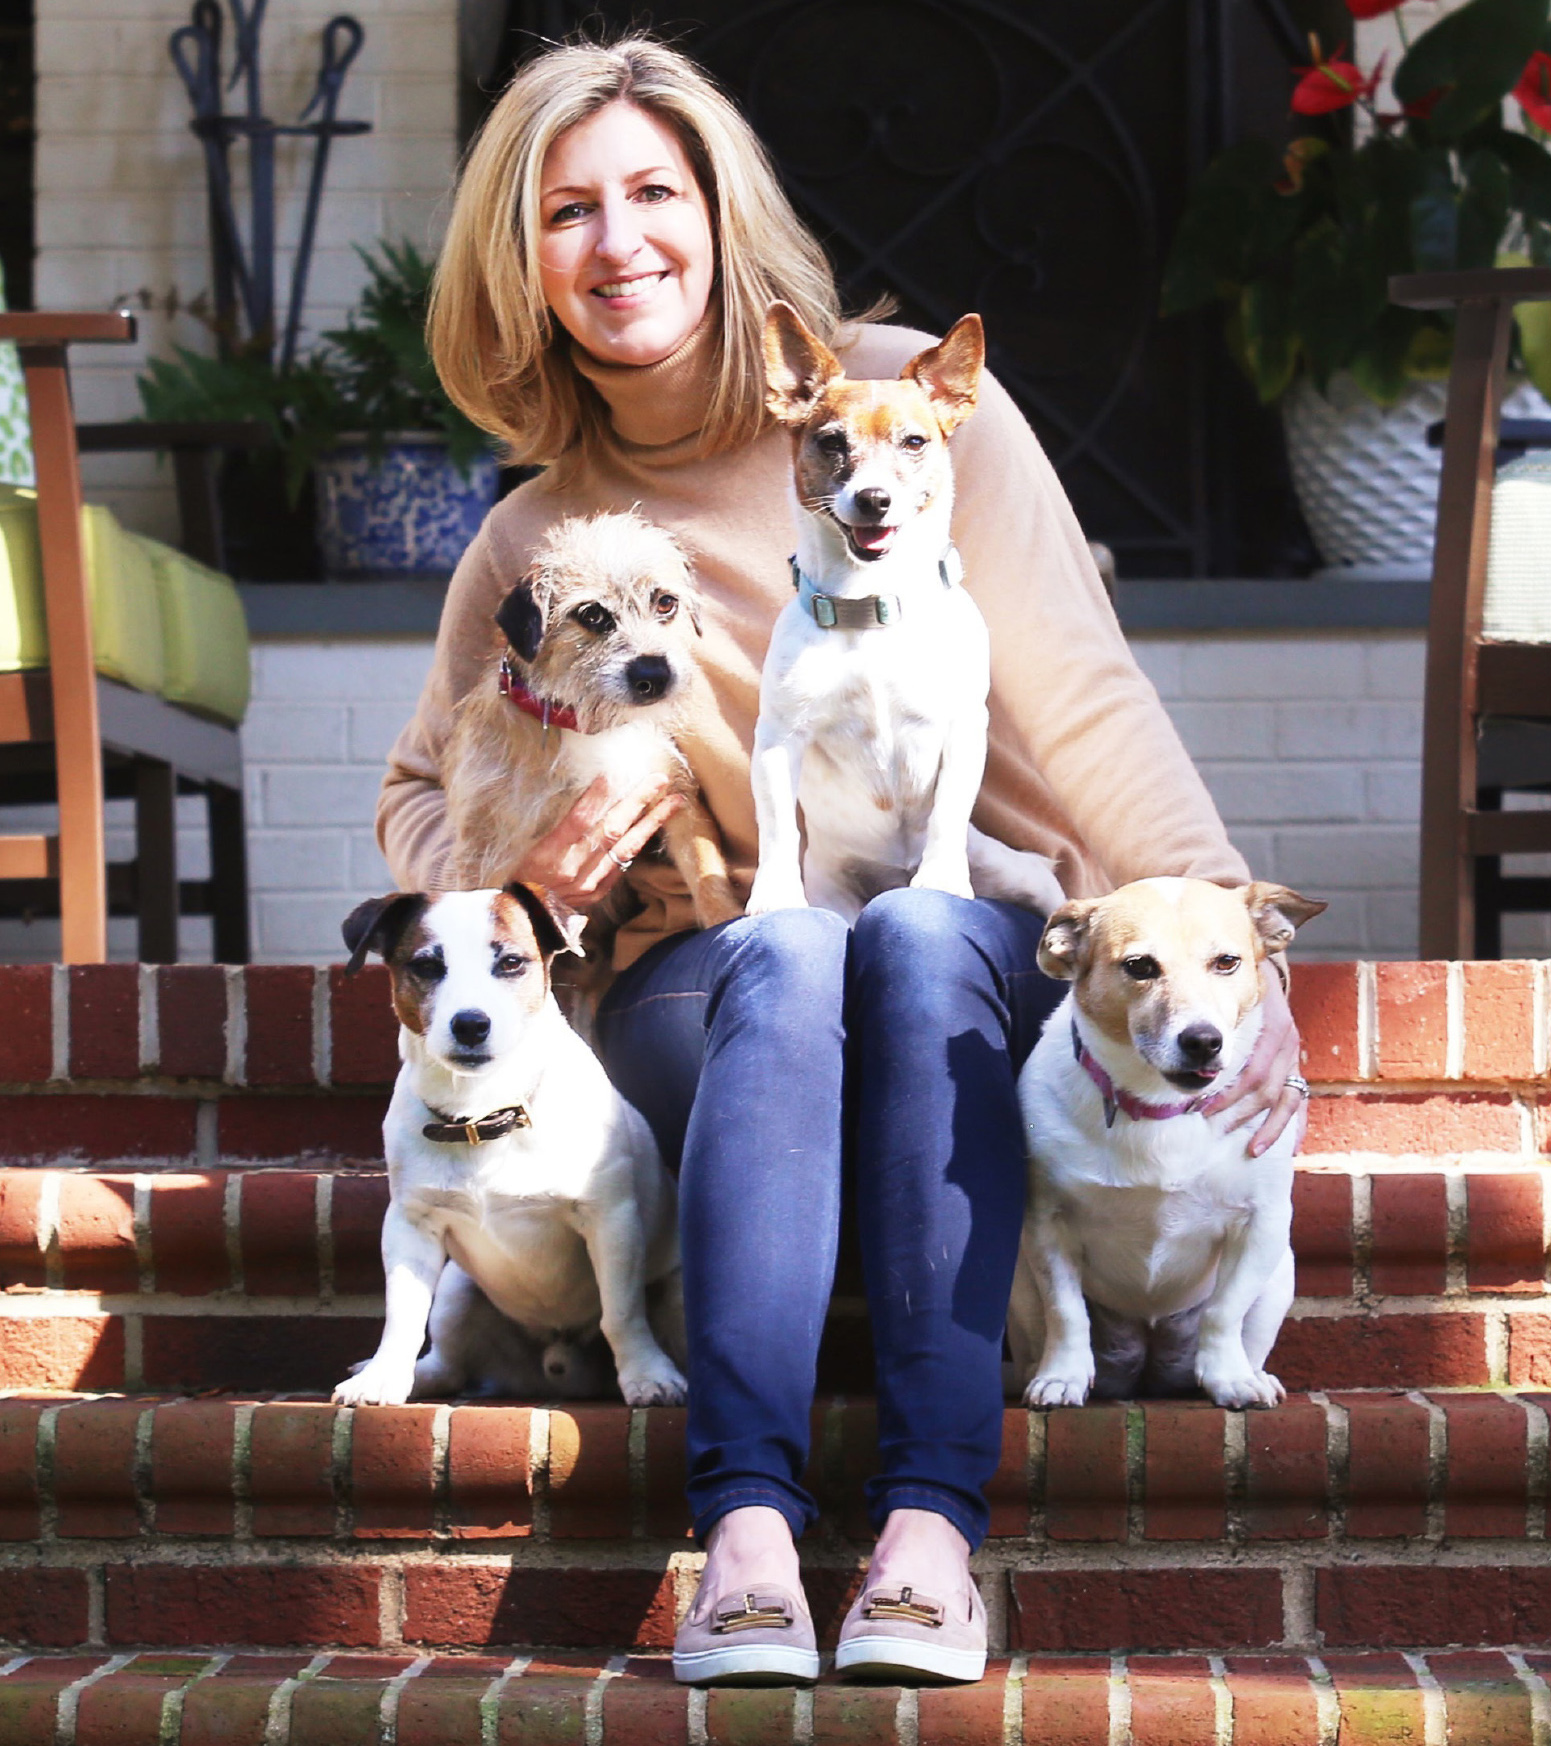 Dr. Rostan with her dogs on front porch